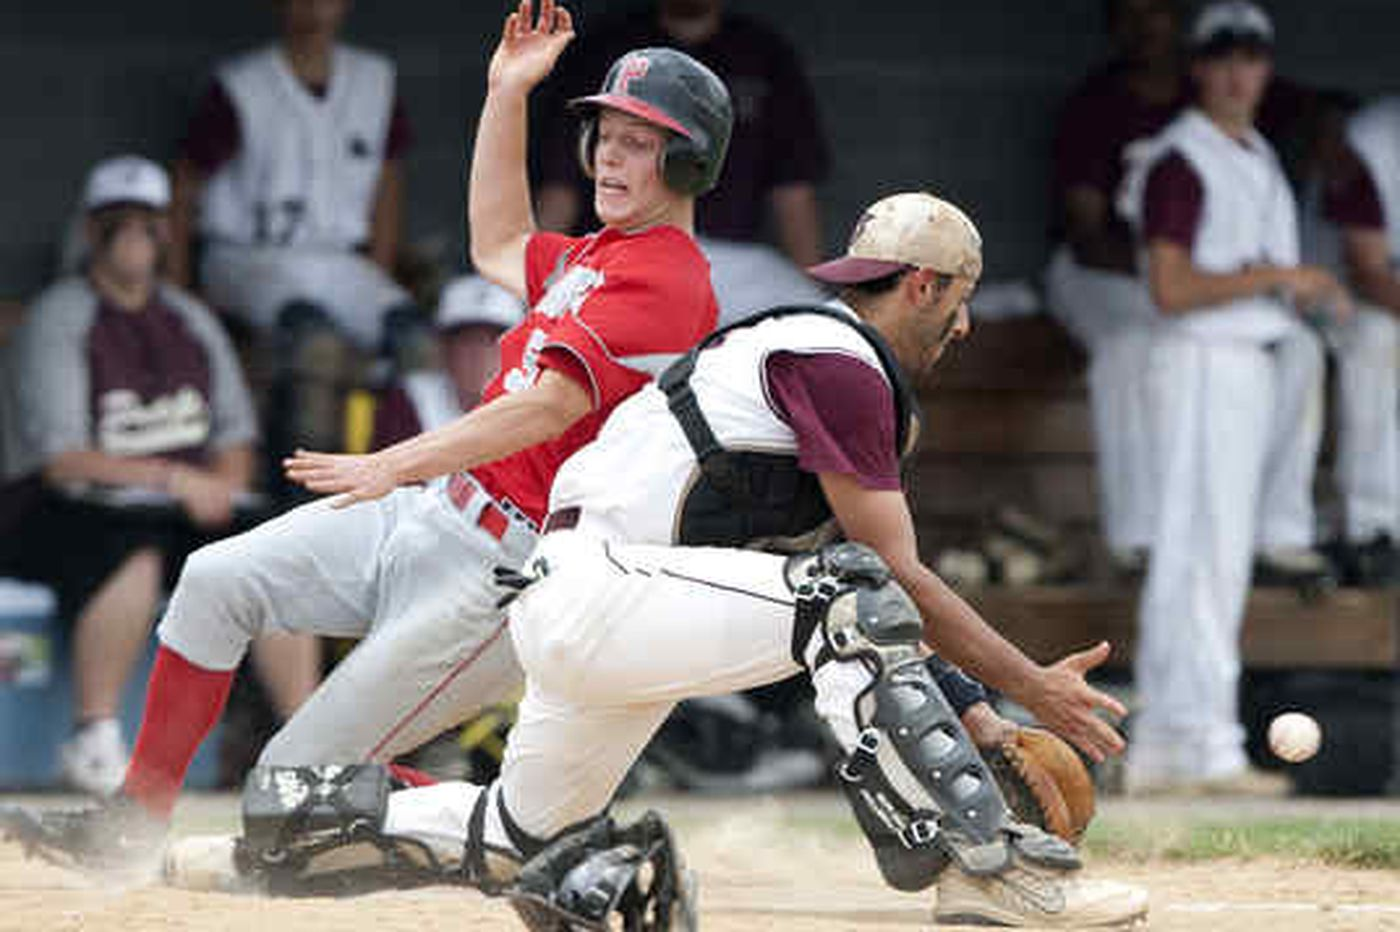 St. Joe's Prep out of baseball playoffs